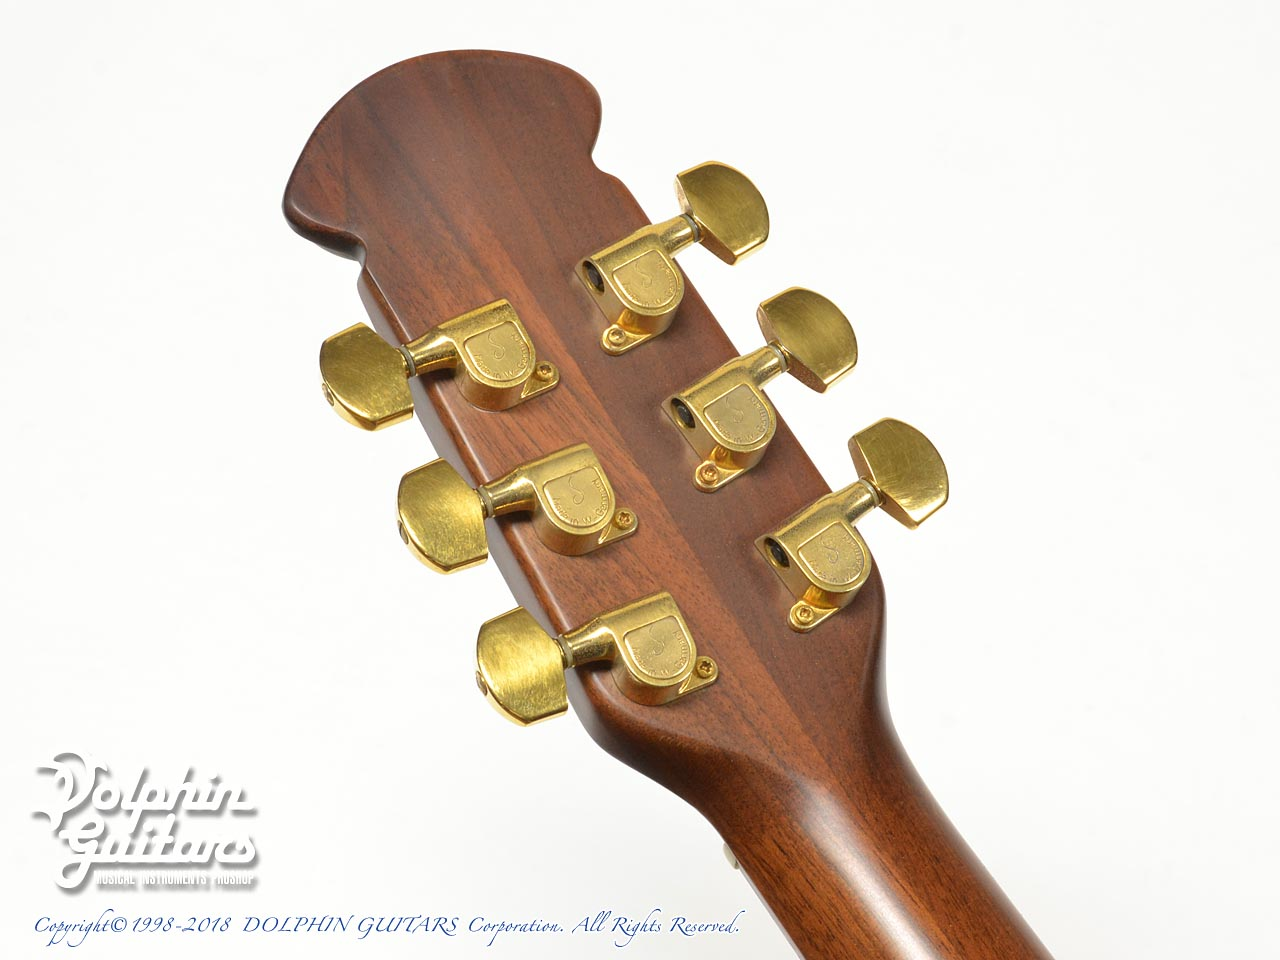 OVATION: Super Adamas 1687-9 (7)